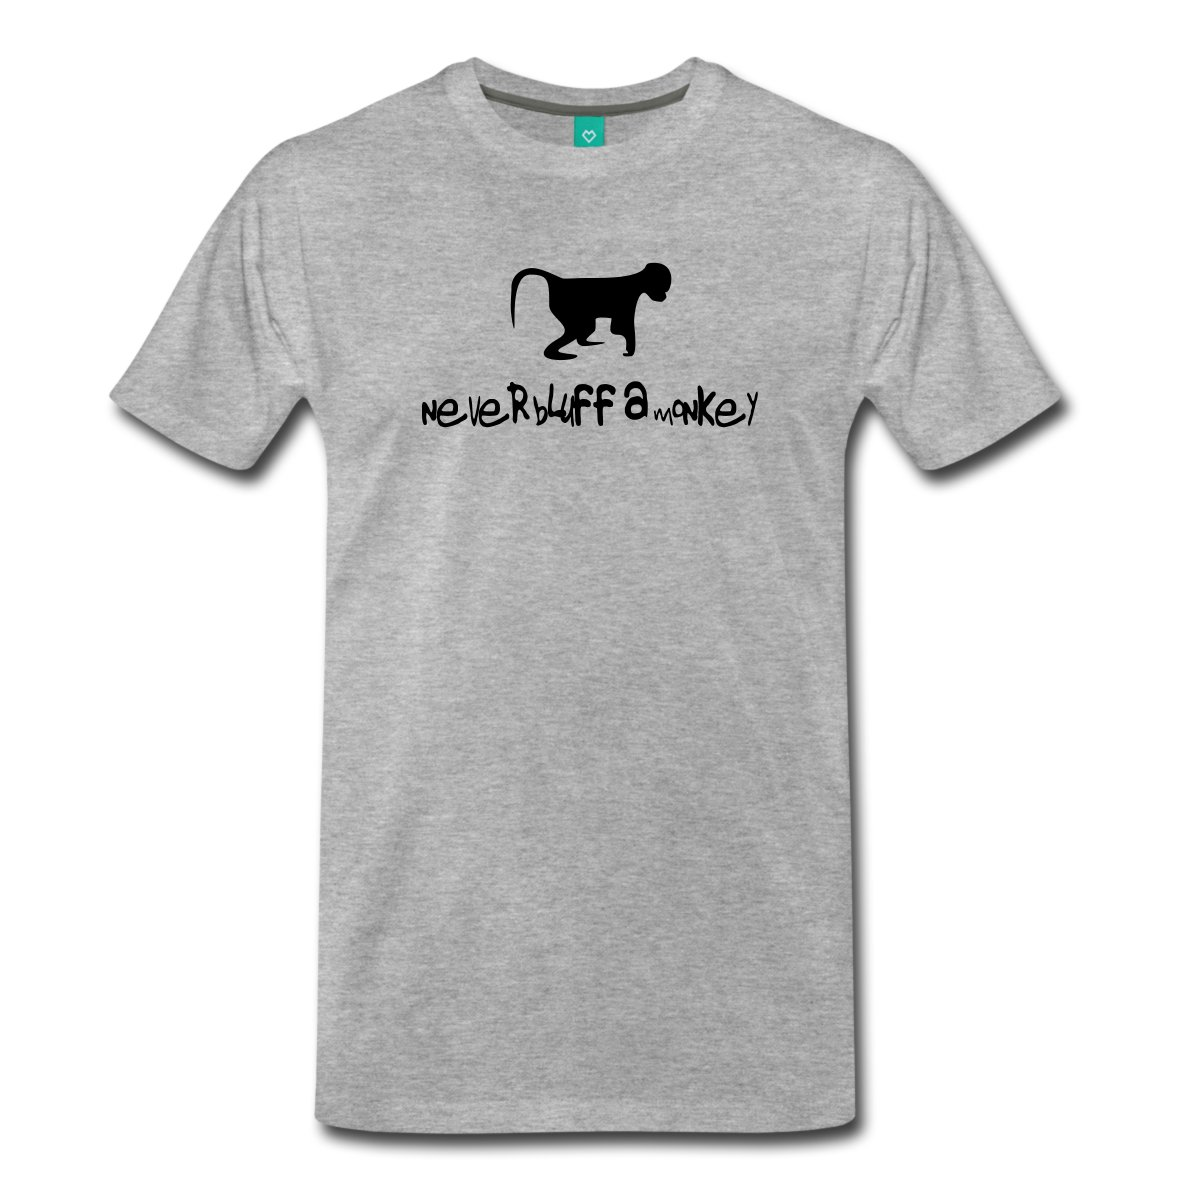 Never Bluff a Monkey - Poker Mens T-Shirt New Arrival Male Tees Casual Boy T-Shirt Tops Discounts 100% Cotton